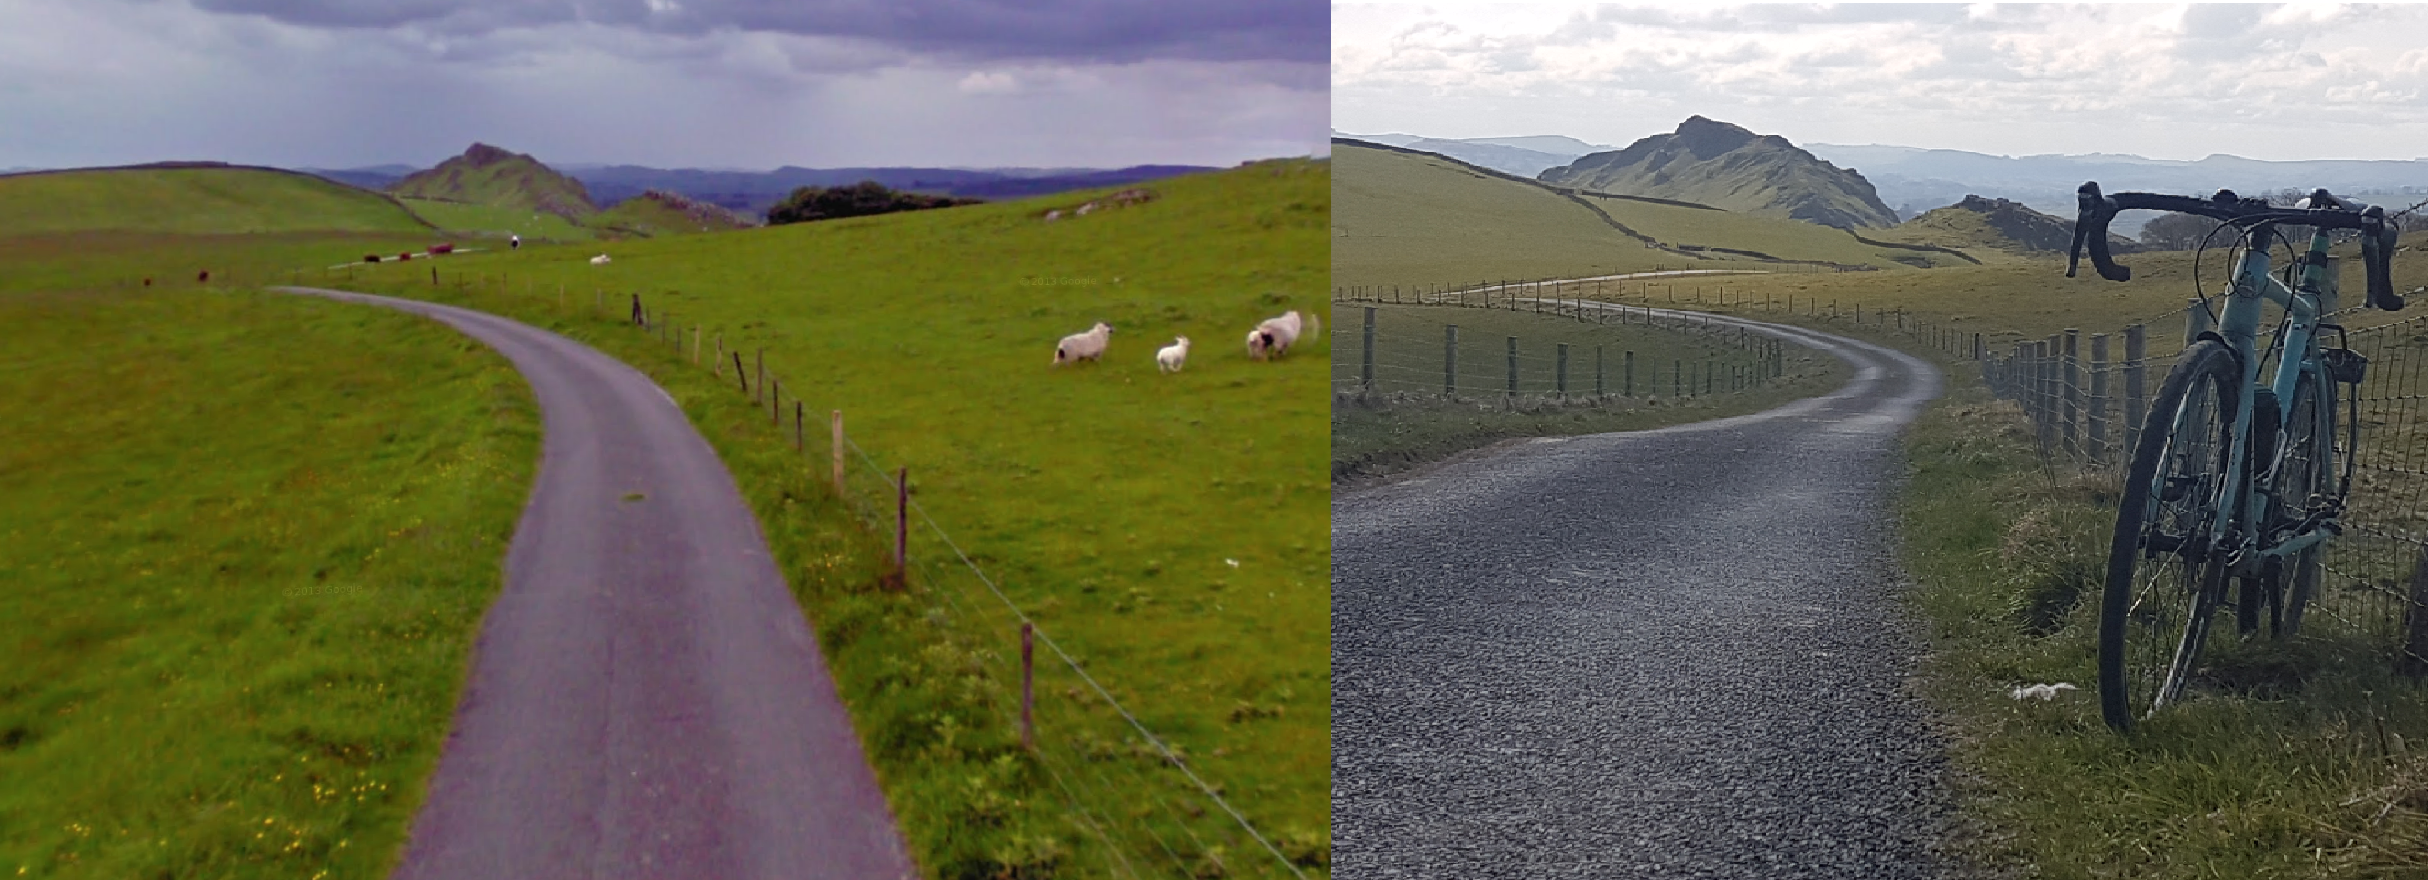 comparison-streetview.png